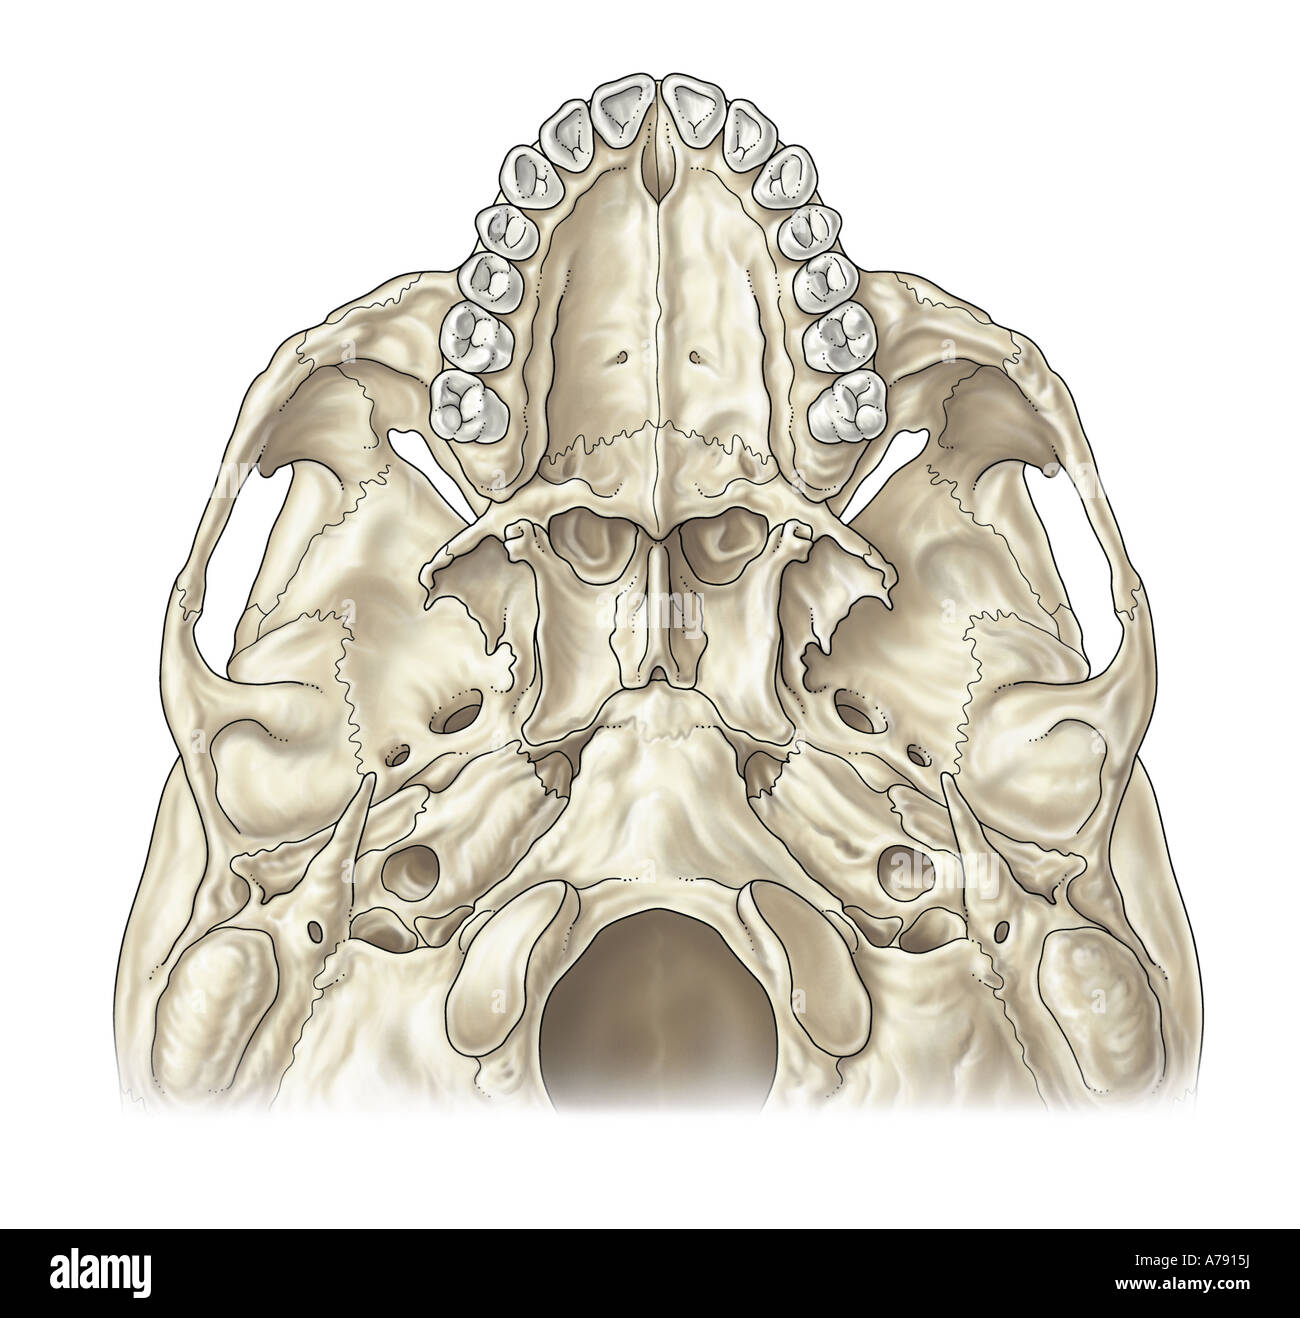 An illustration of the base of the skull - Stock Image